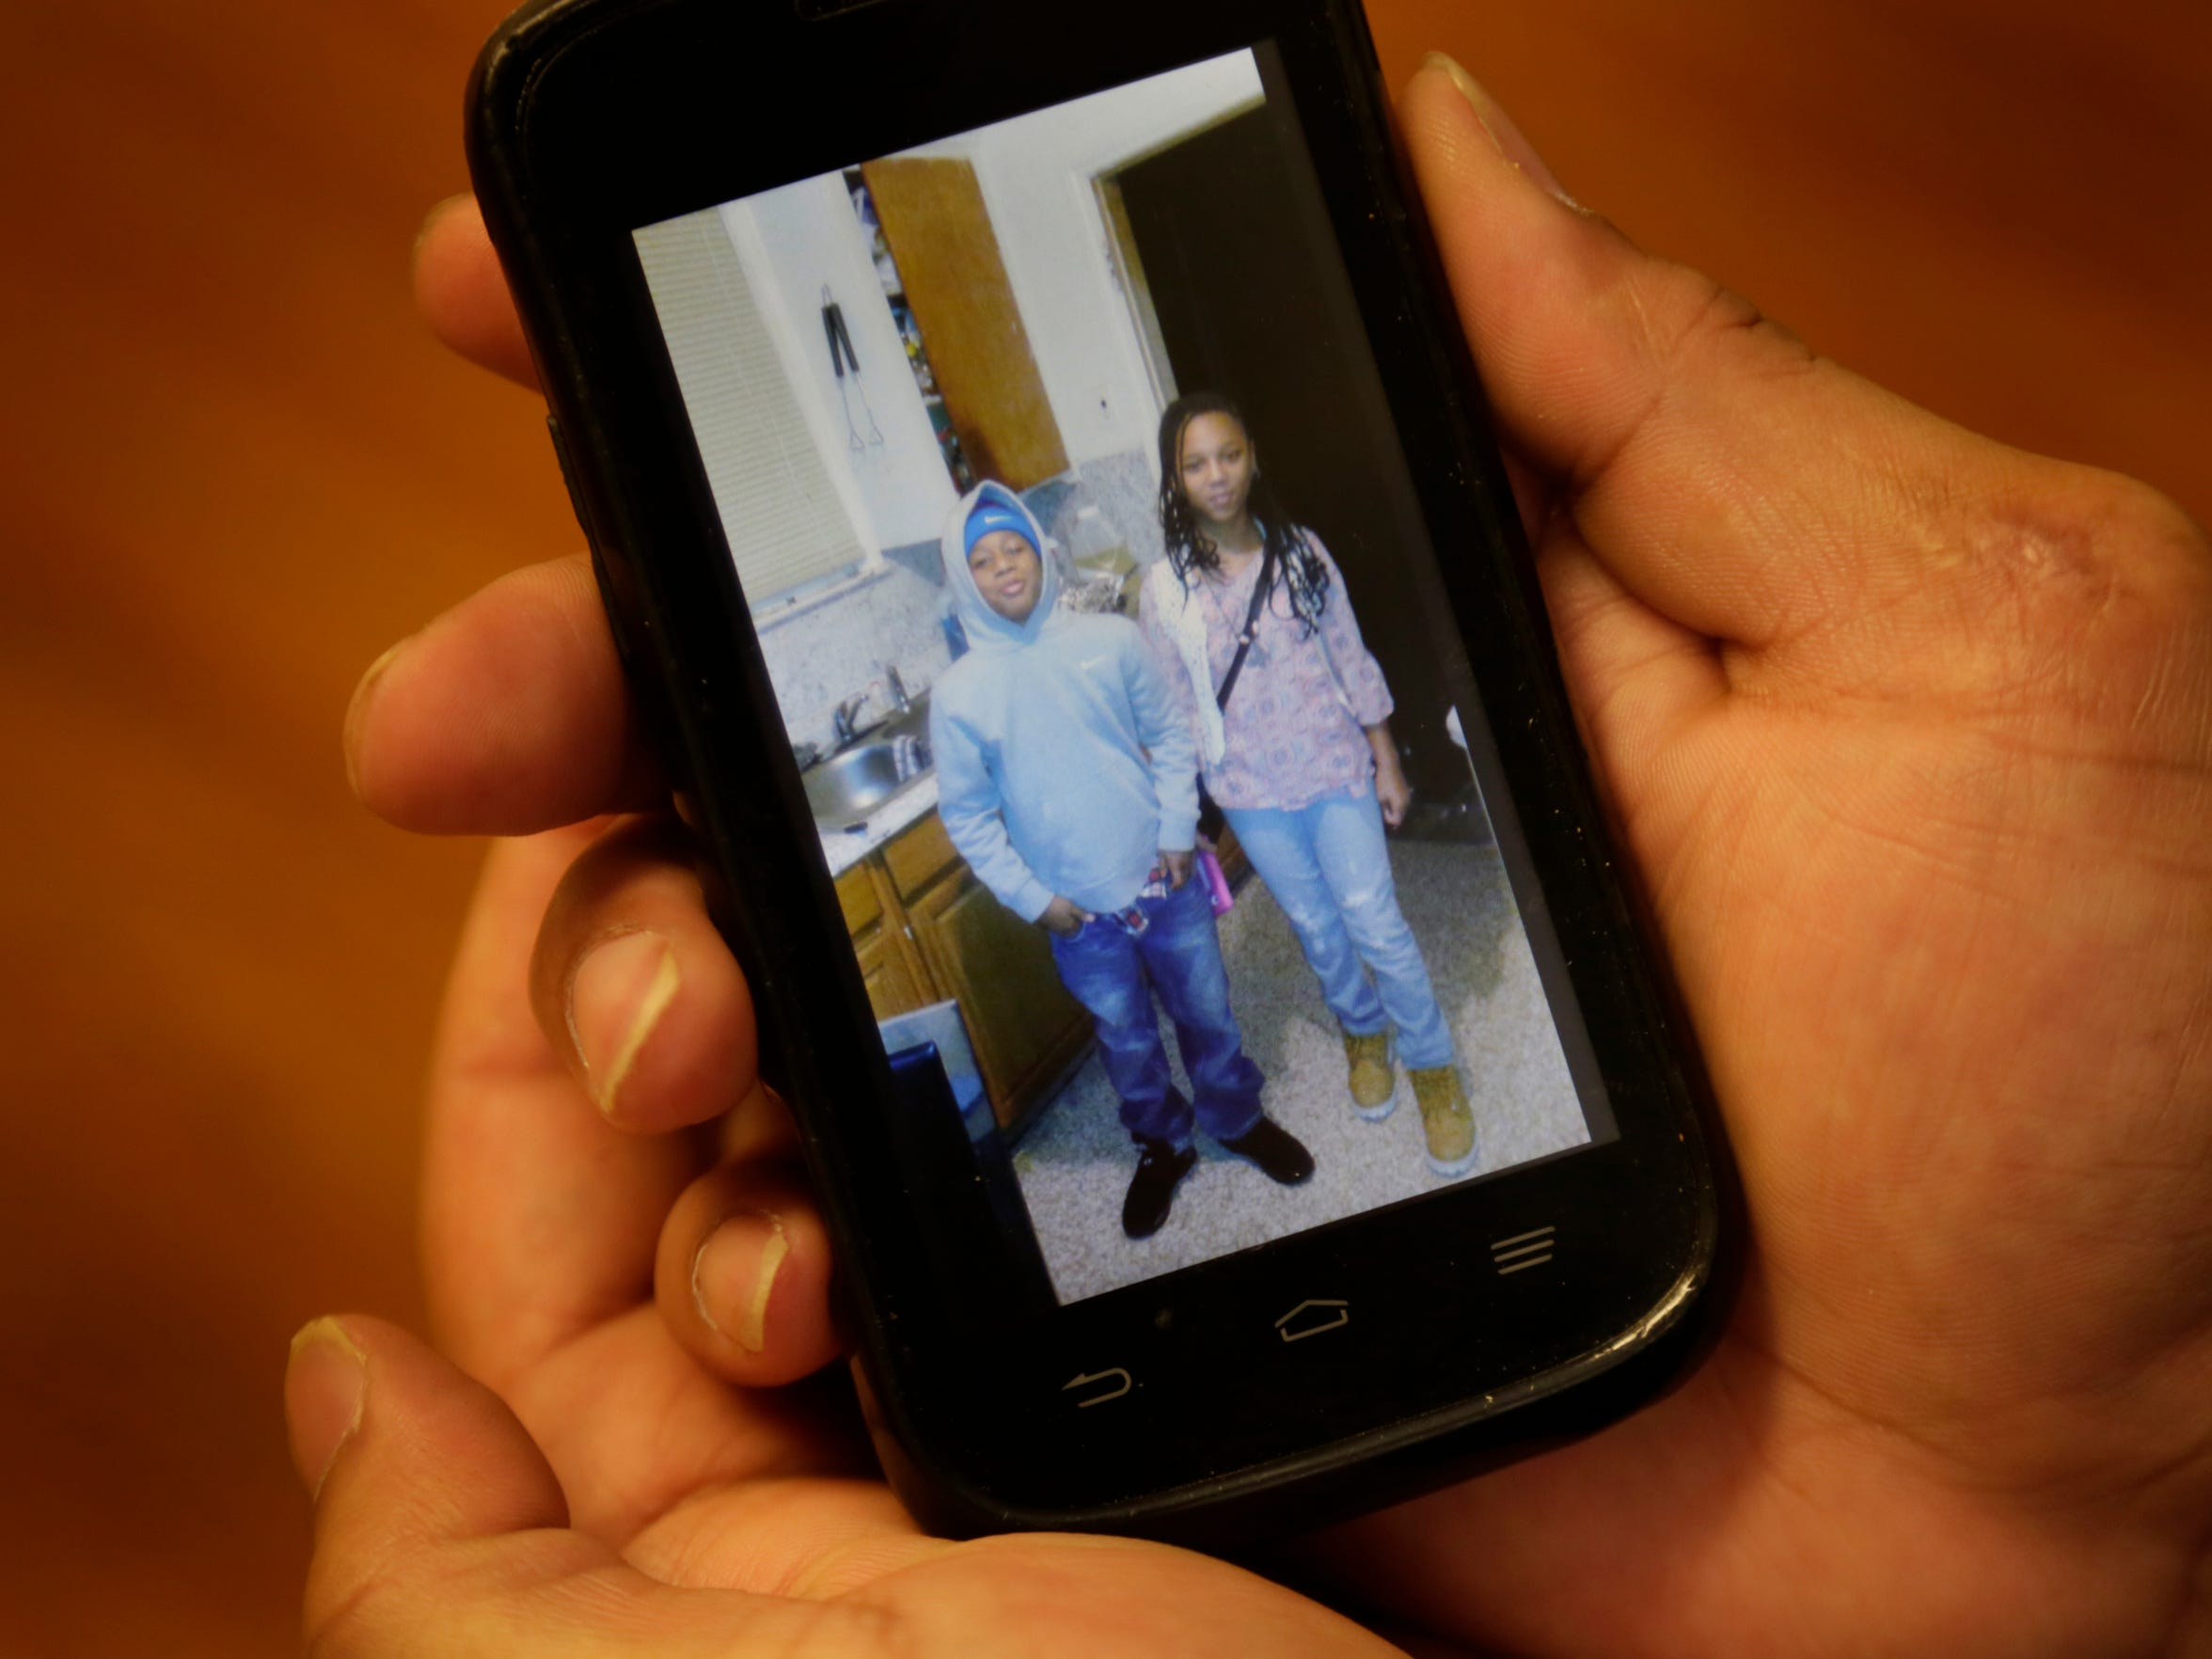 Lamar McGaughy, 38, of Detroit, shows a photo of his two children during a meeting at the Detroit Center for Family Advocacy in Detroit.